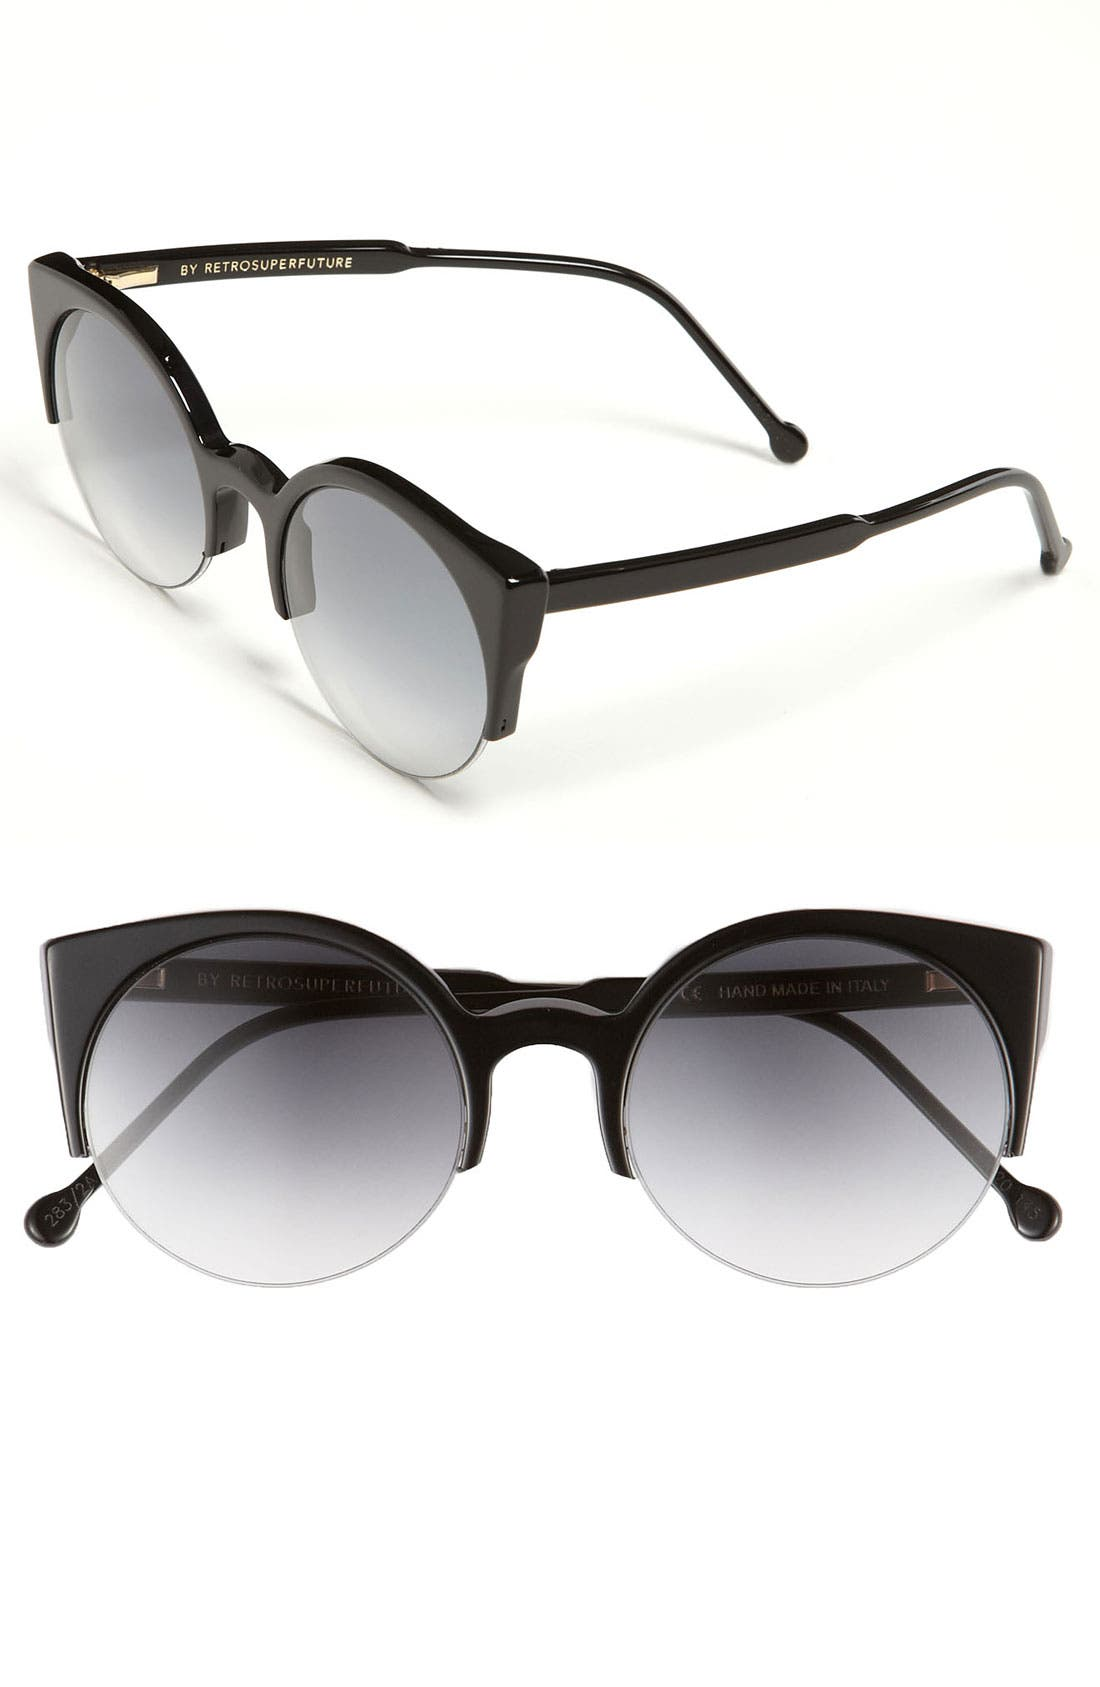 Main Image - SUPER by RETROSUPERFUTURE 'Lucia' 51mm Sunglasses